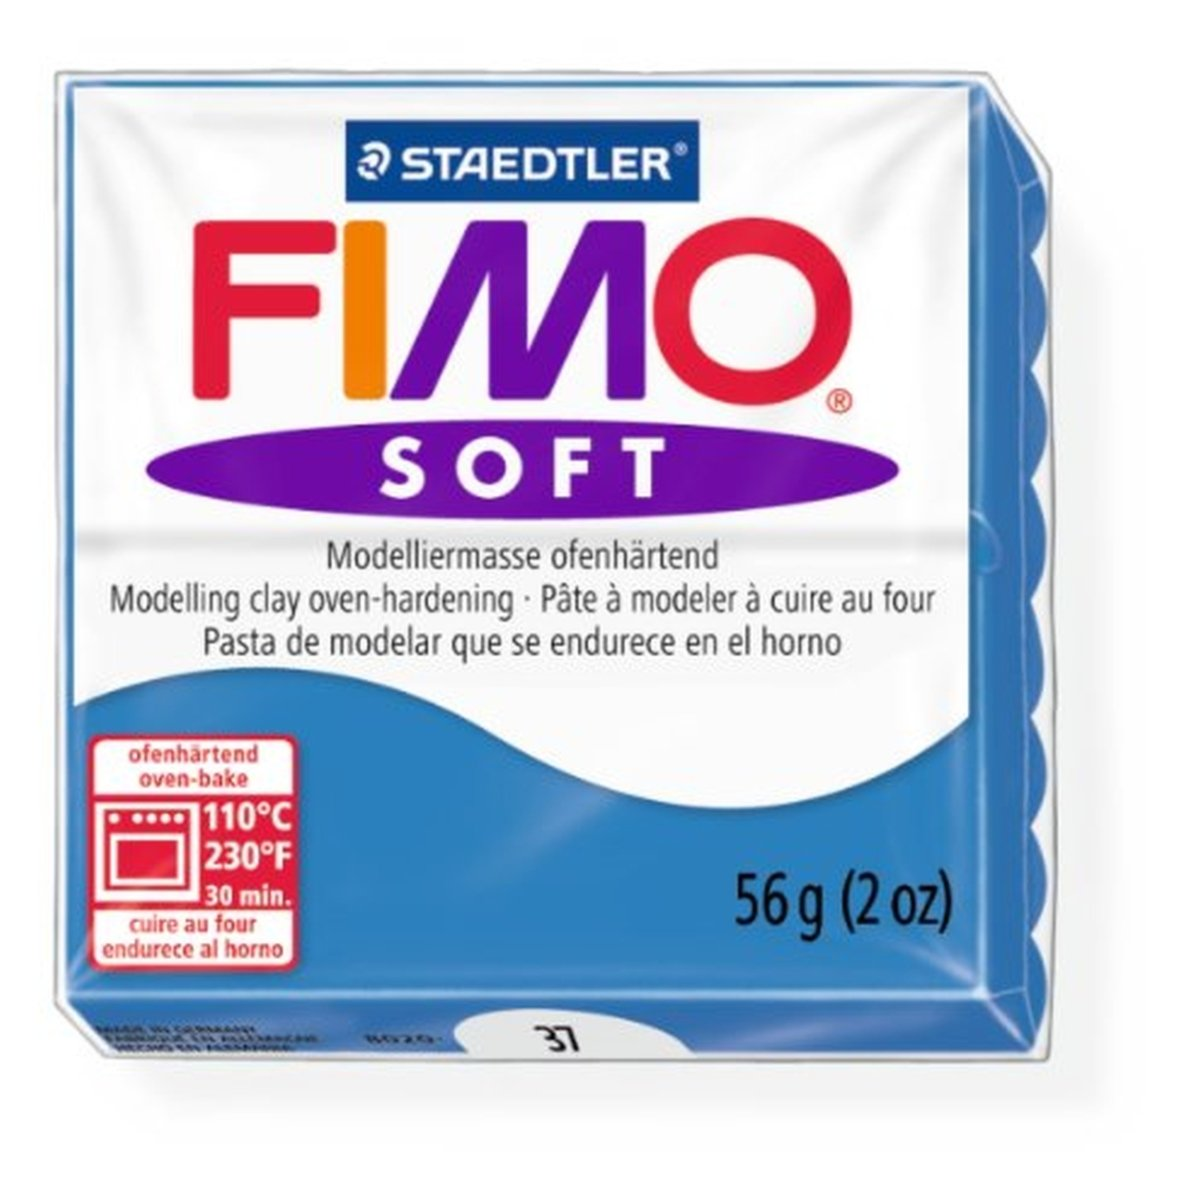 Staedtler Fimo Soft Pacific Blue (37) Oven Bake Modelling Clay Moulding Polymer Block Colour 56g (1 Pack)